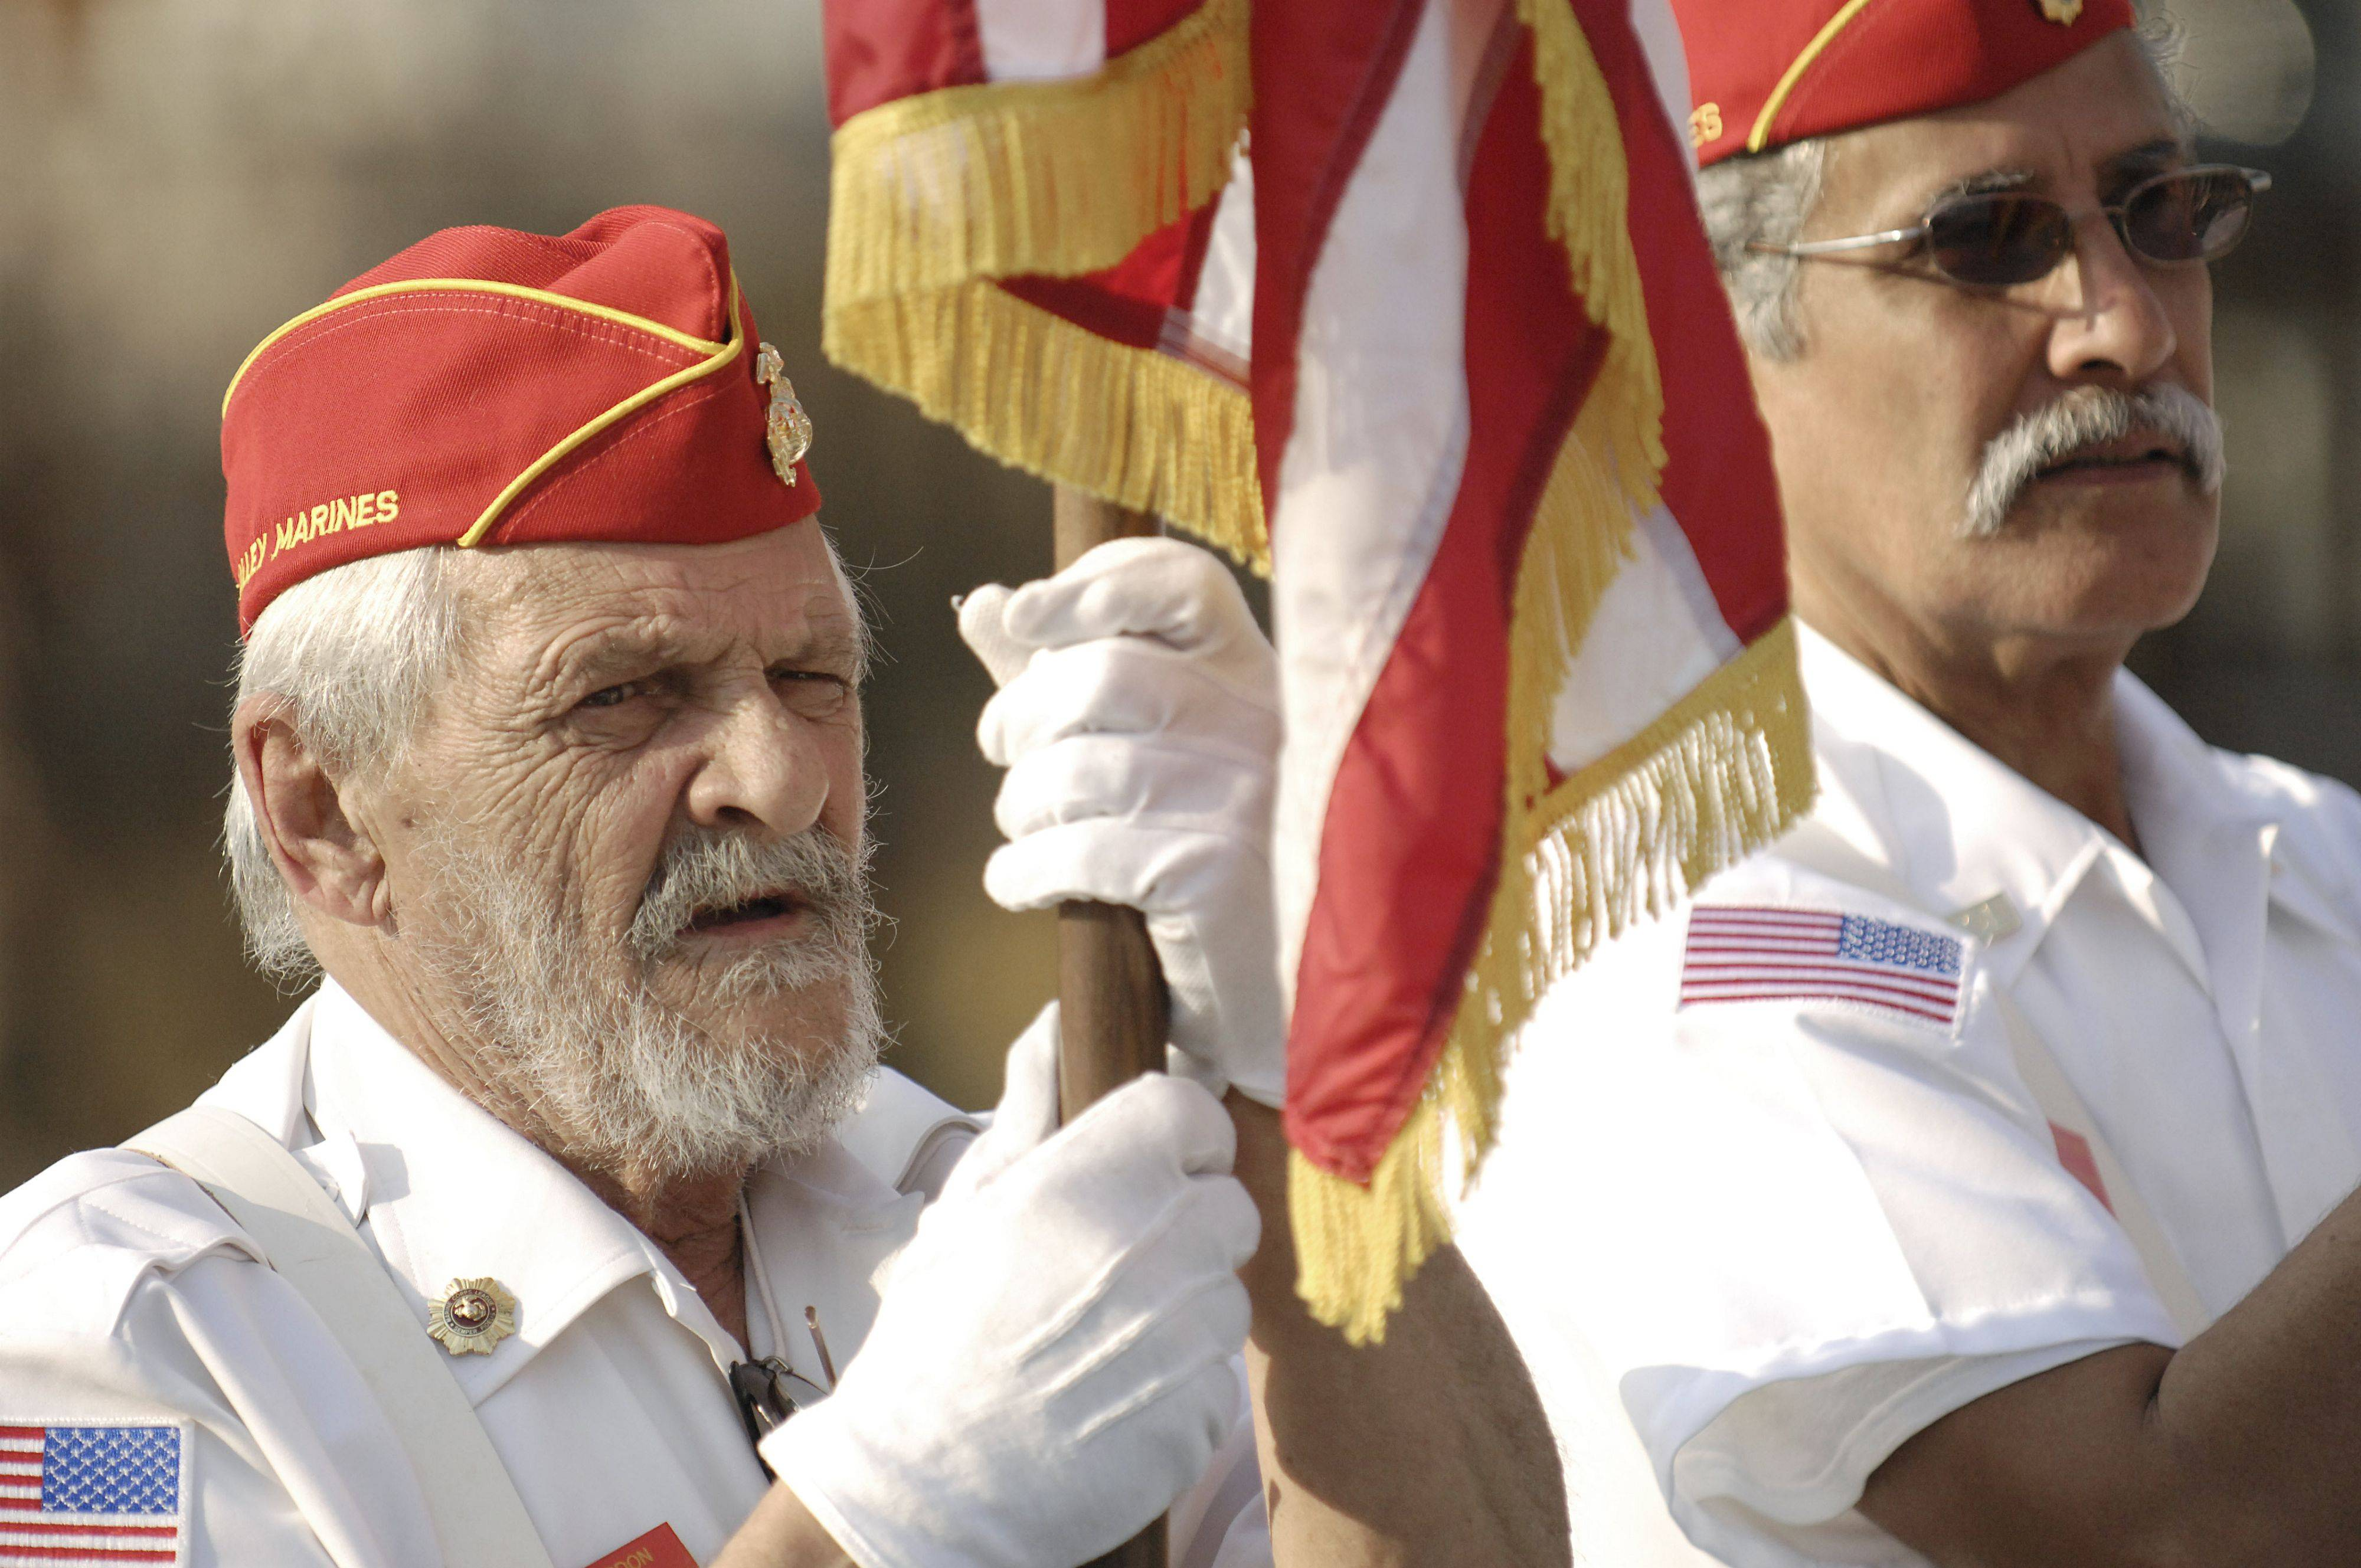 Veteran Frank Gordon of Aurora serves in the Fox Valley Marine Marine Corps Color Guard for the Veterans Day ceremony in North Aurora on Thursday, November 11.